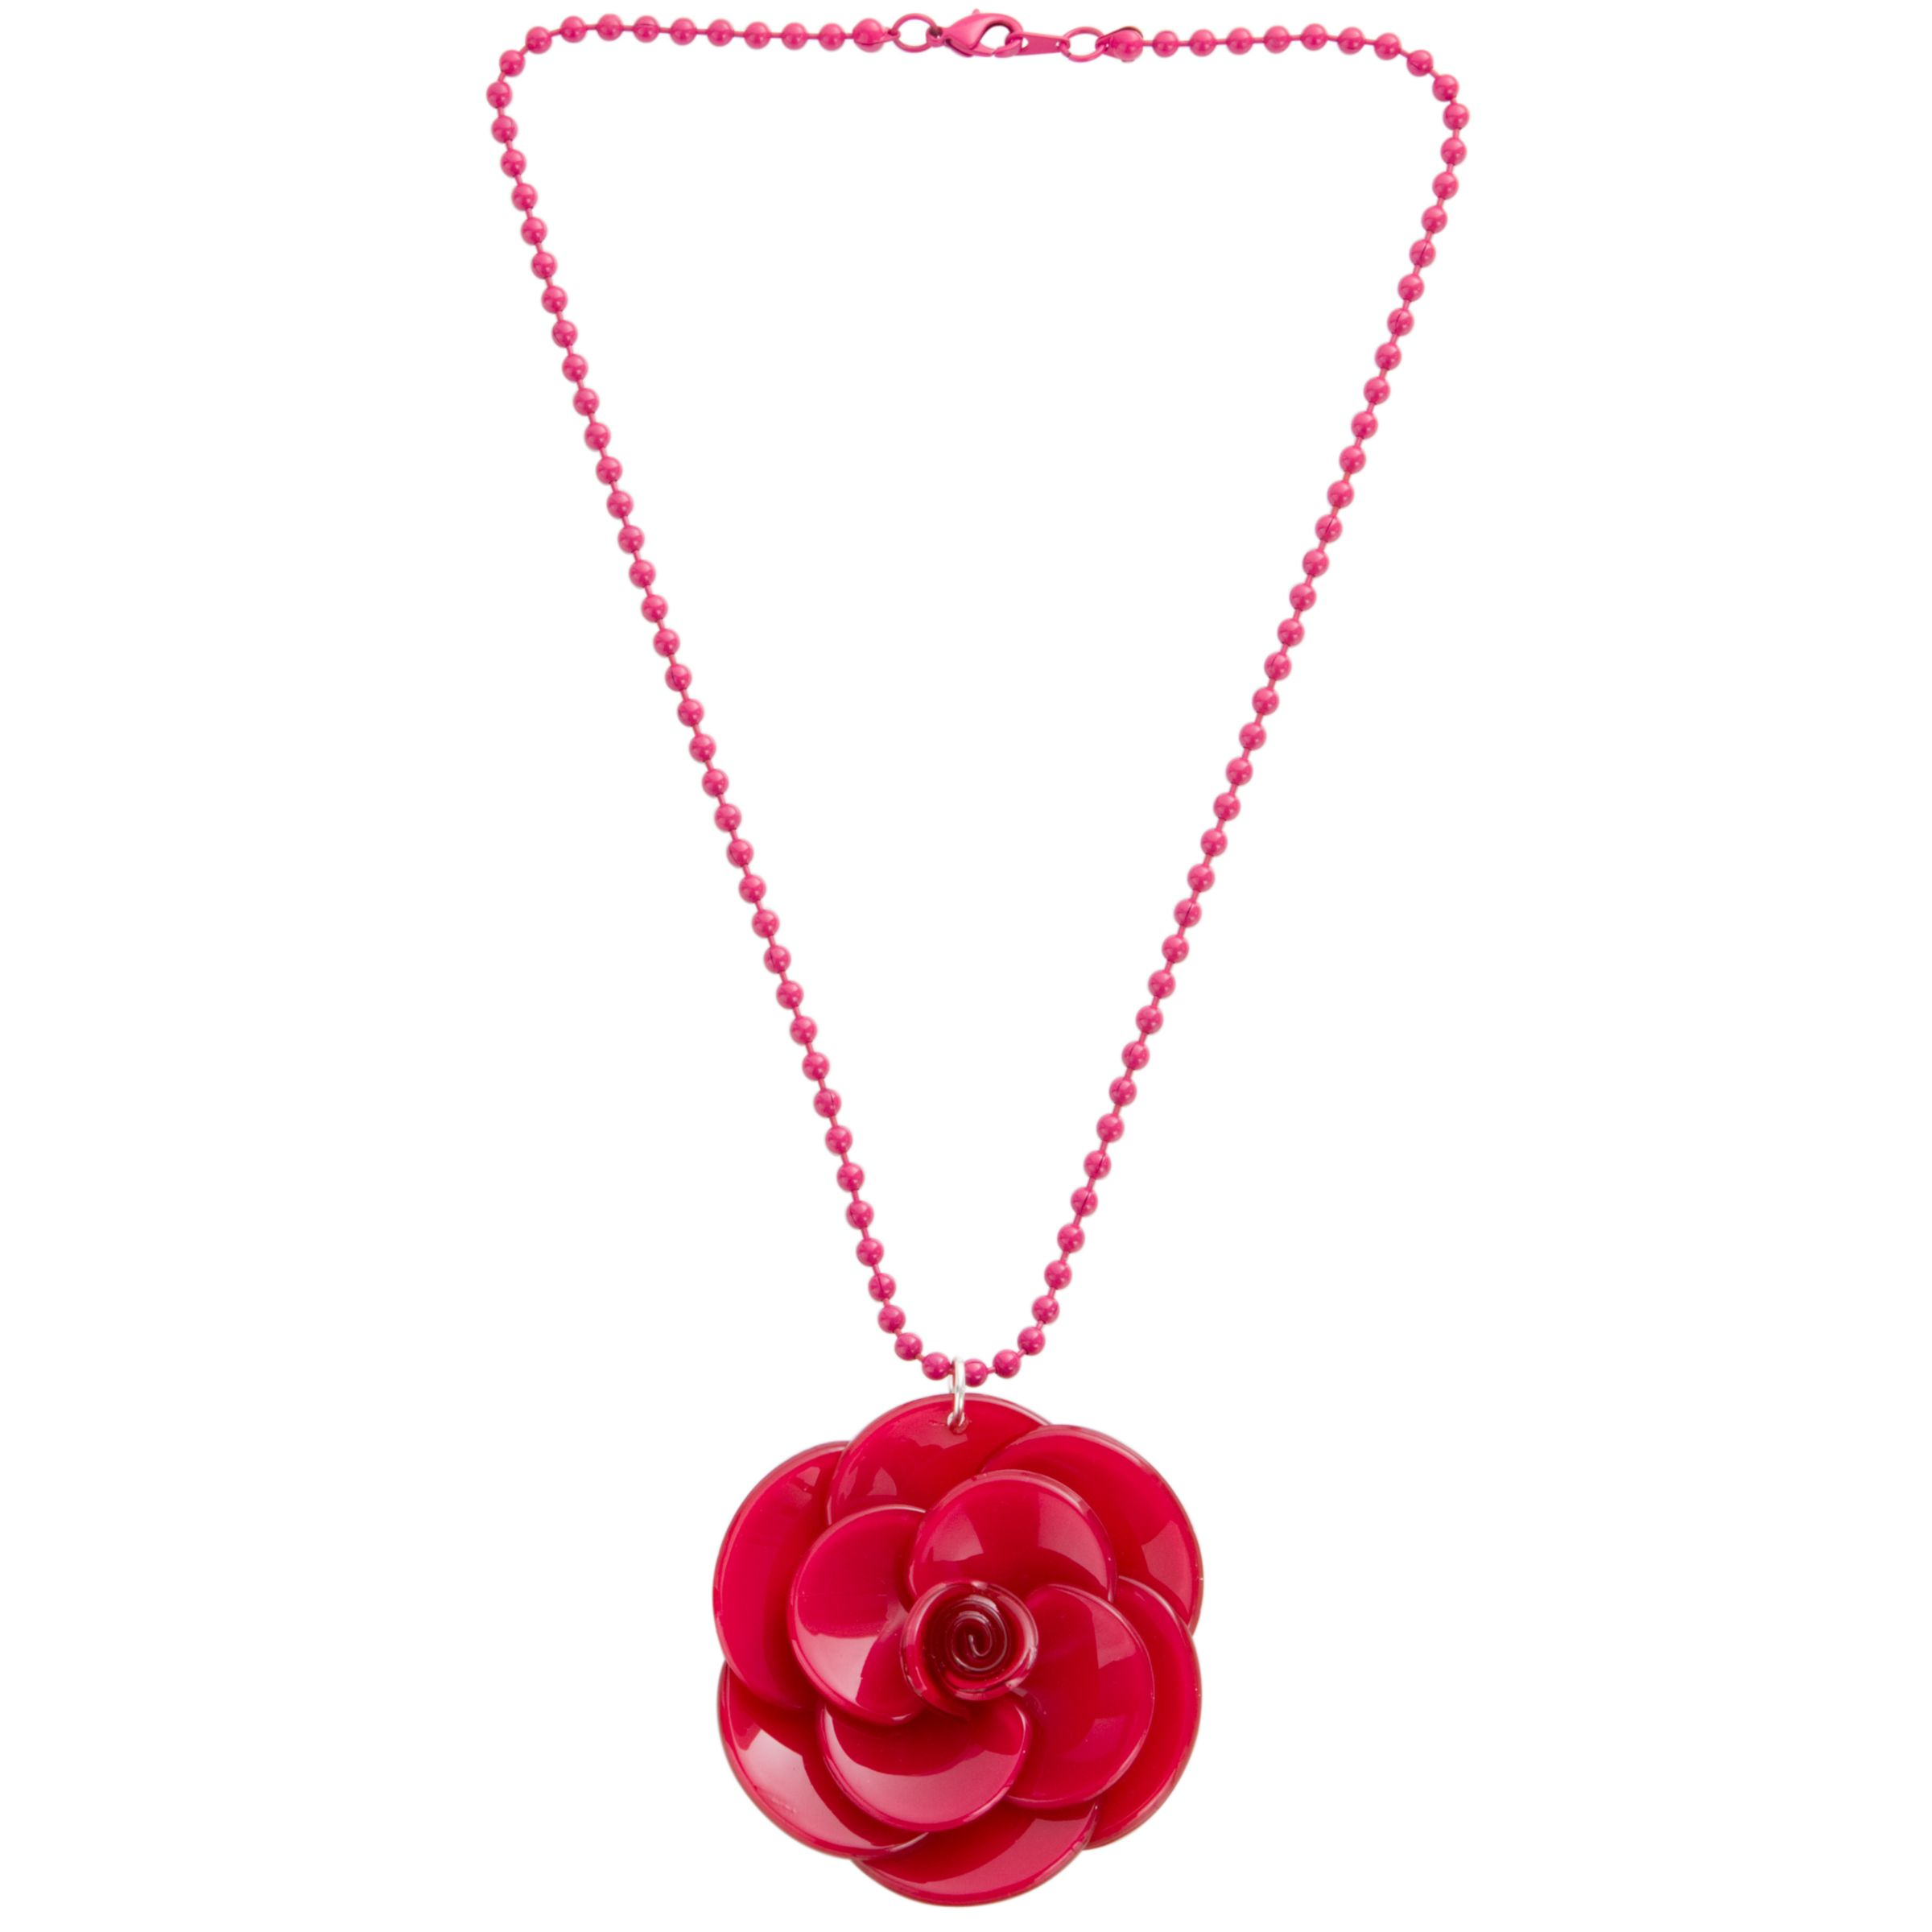 Big Baby Large Rosette Fuchsia Flower Pendant Necklace